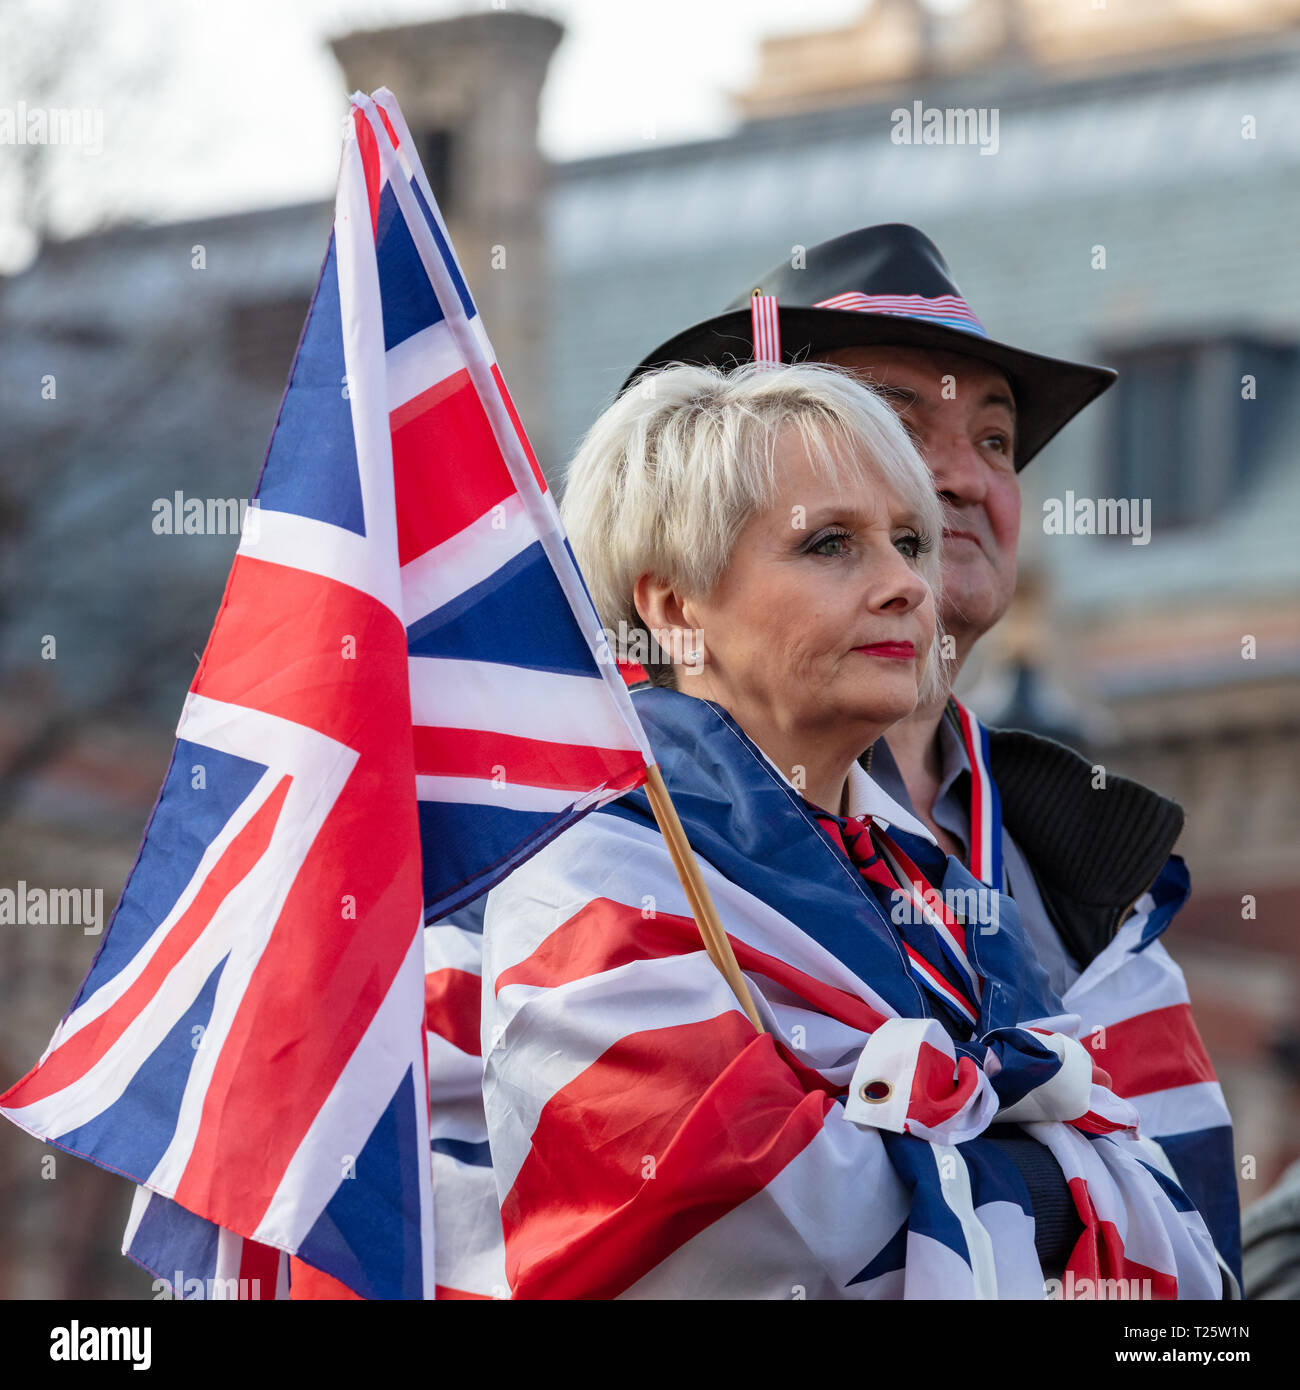 Westminster, London, UK; 29th March 2019; Female Pro-Brexit Demonstrator With Union Jacks Listens To Speeches During 'March to Leave' Rally. - Stock Image